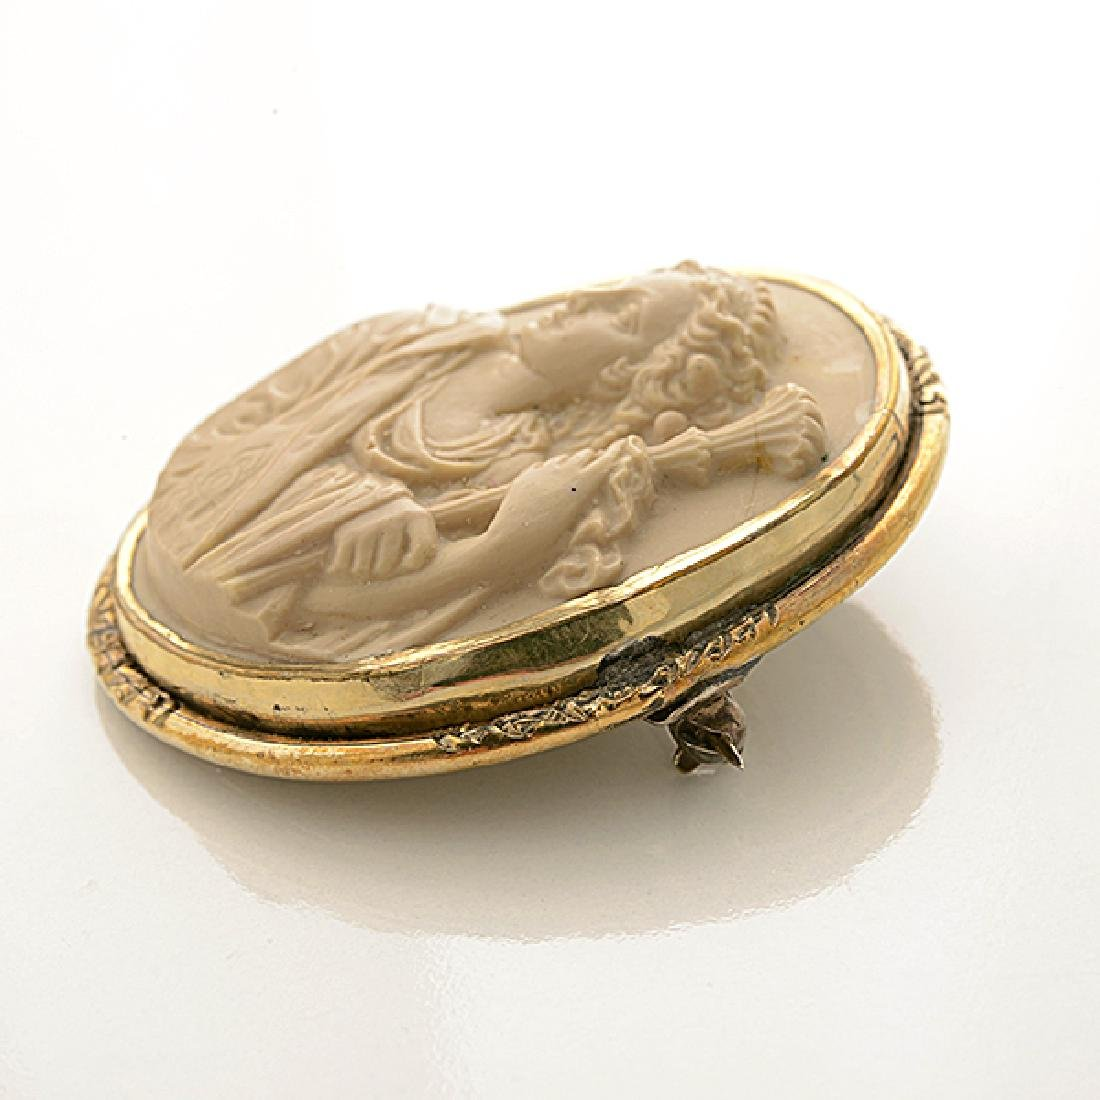 Lava Cameo, Gold-Filled Brooch. - 3